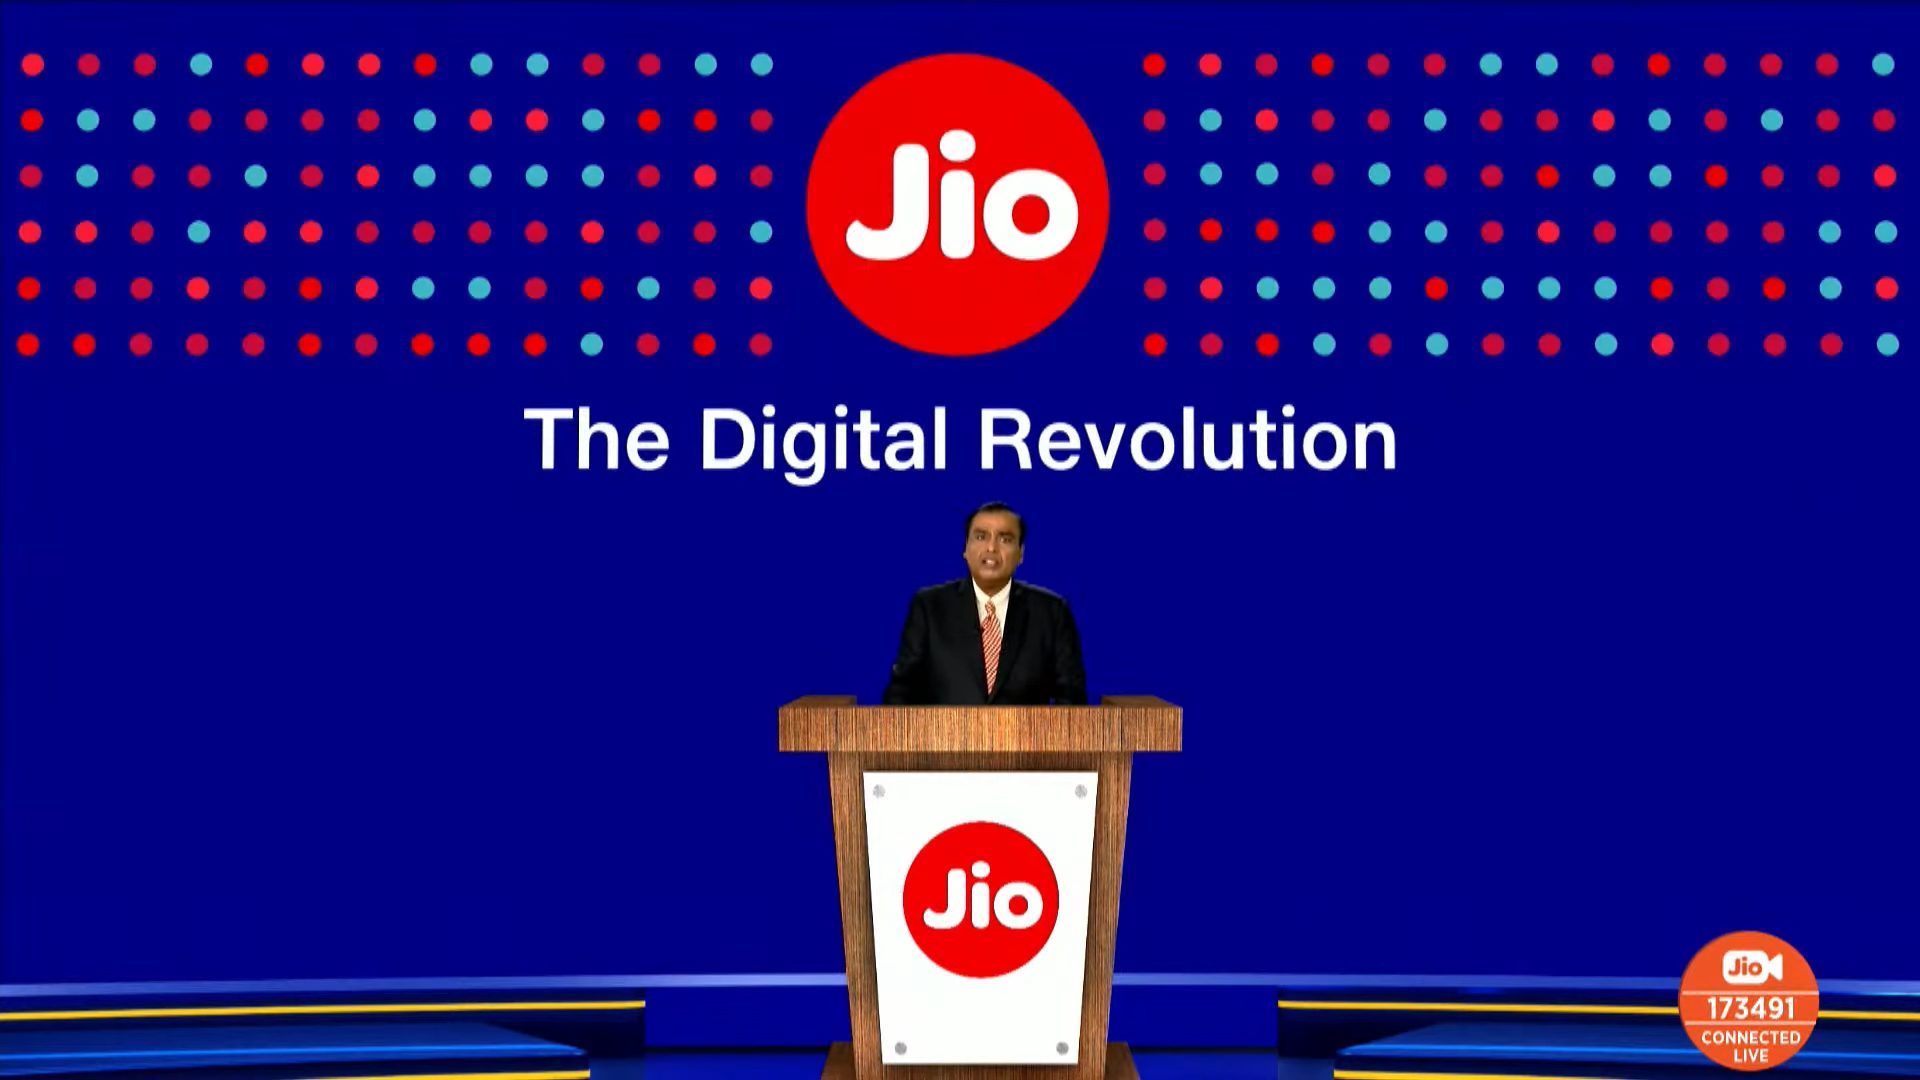 Reliance Jio to partner with Itel for an affordable smartphone